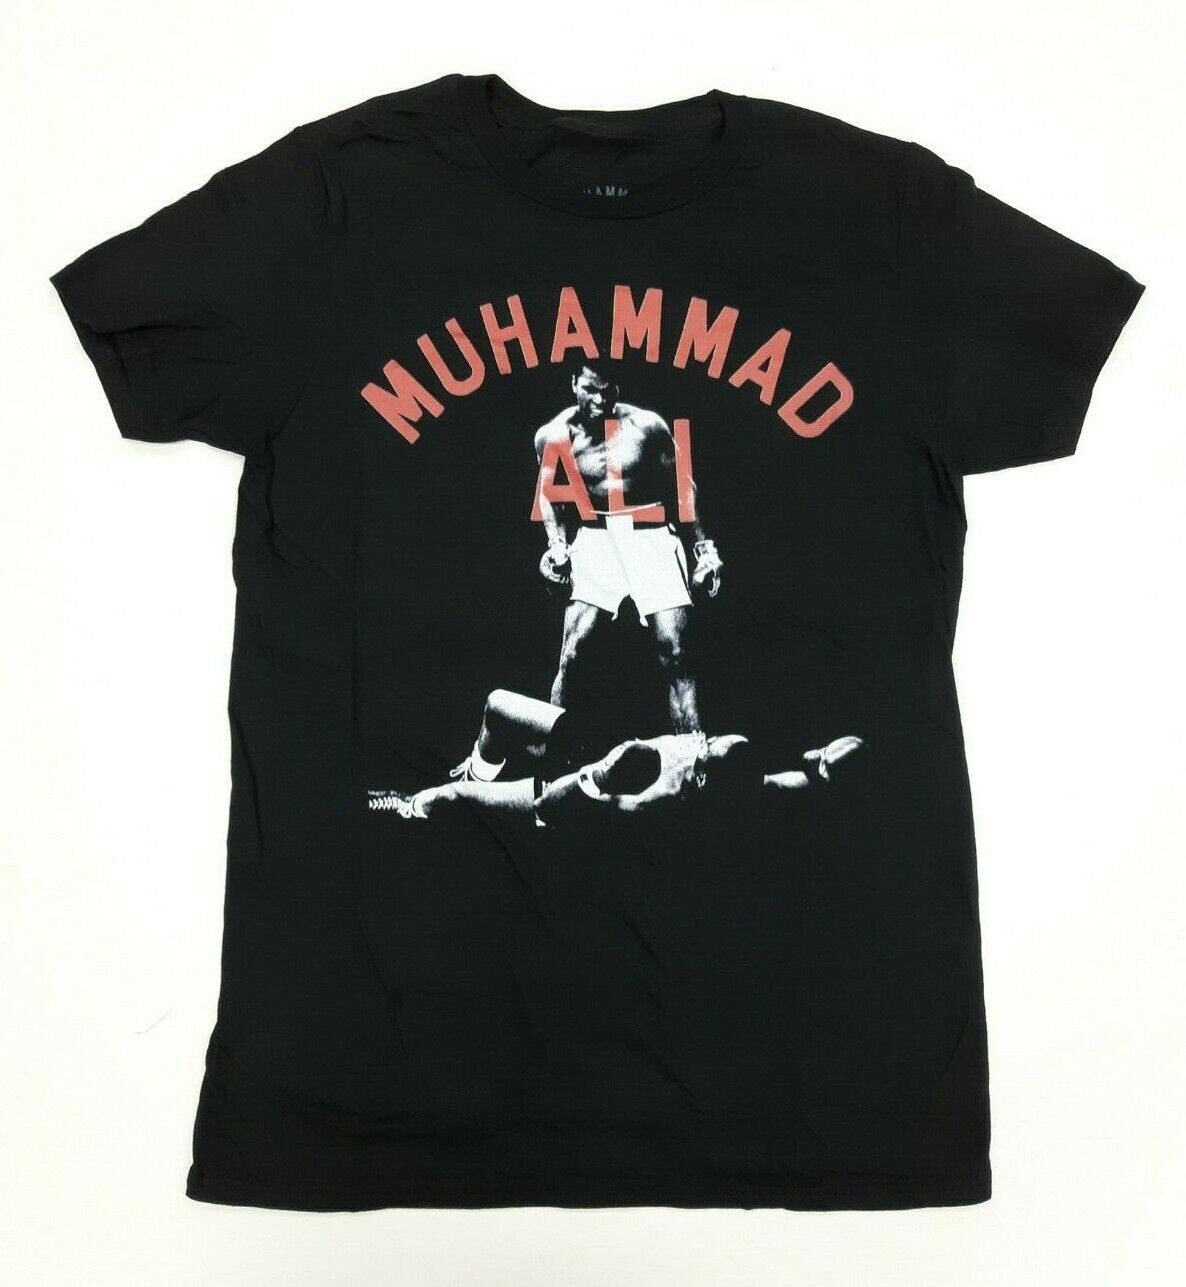 Muhammad Ali Black and White Knockout Graphic Design Men's T-Shirt Cotton (775) Clothing, Shoes & Accessories